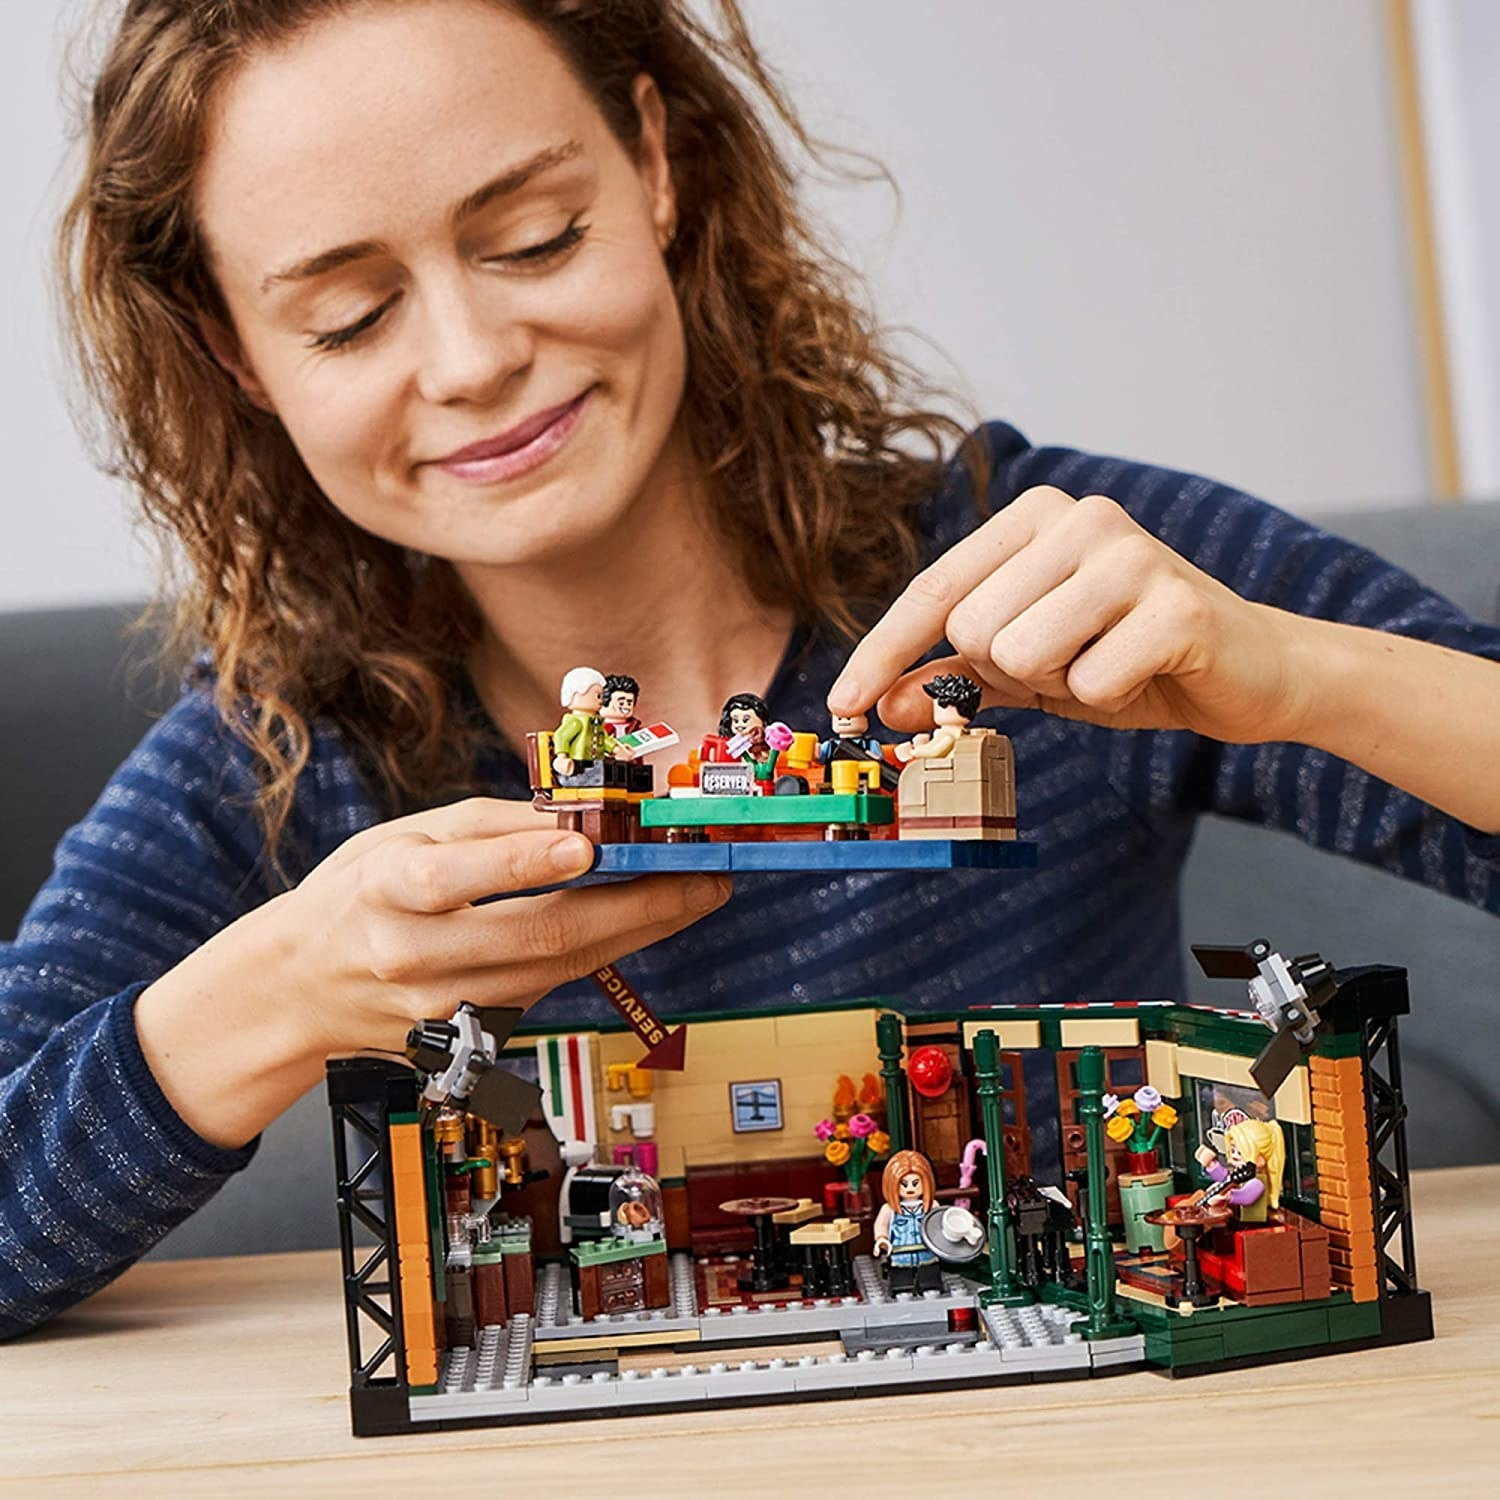 person building the lego set